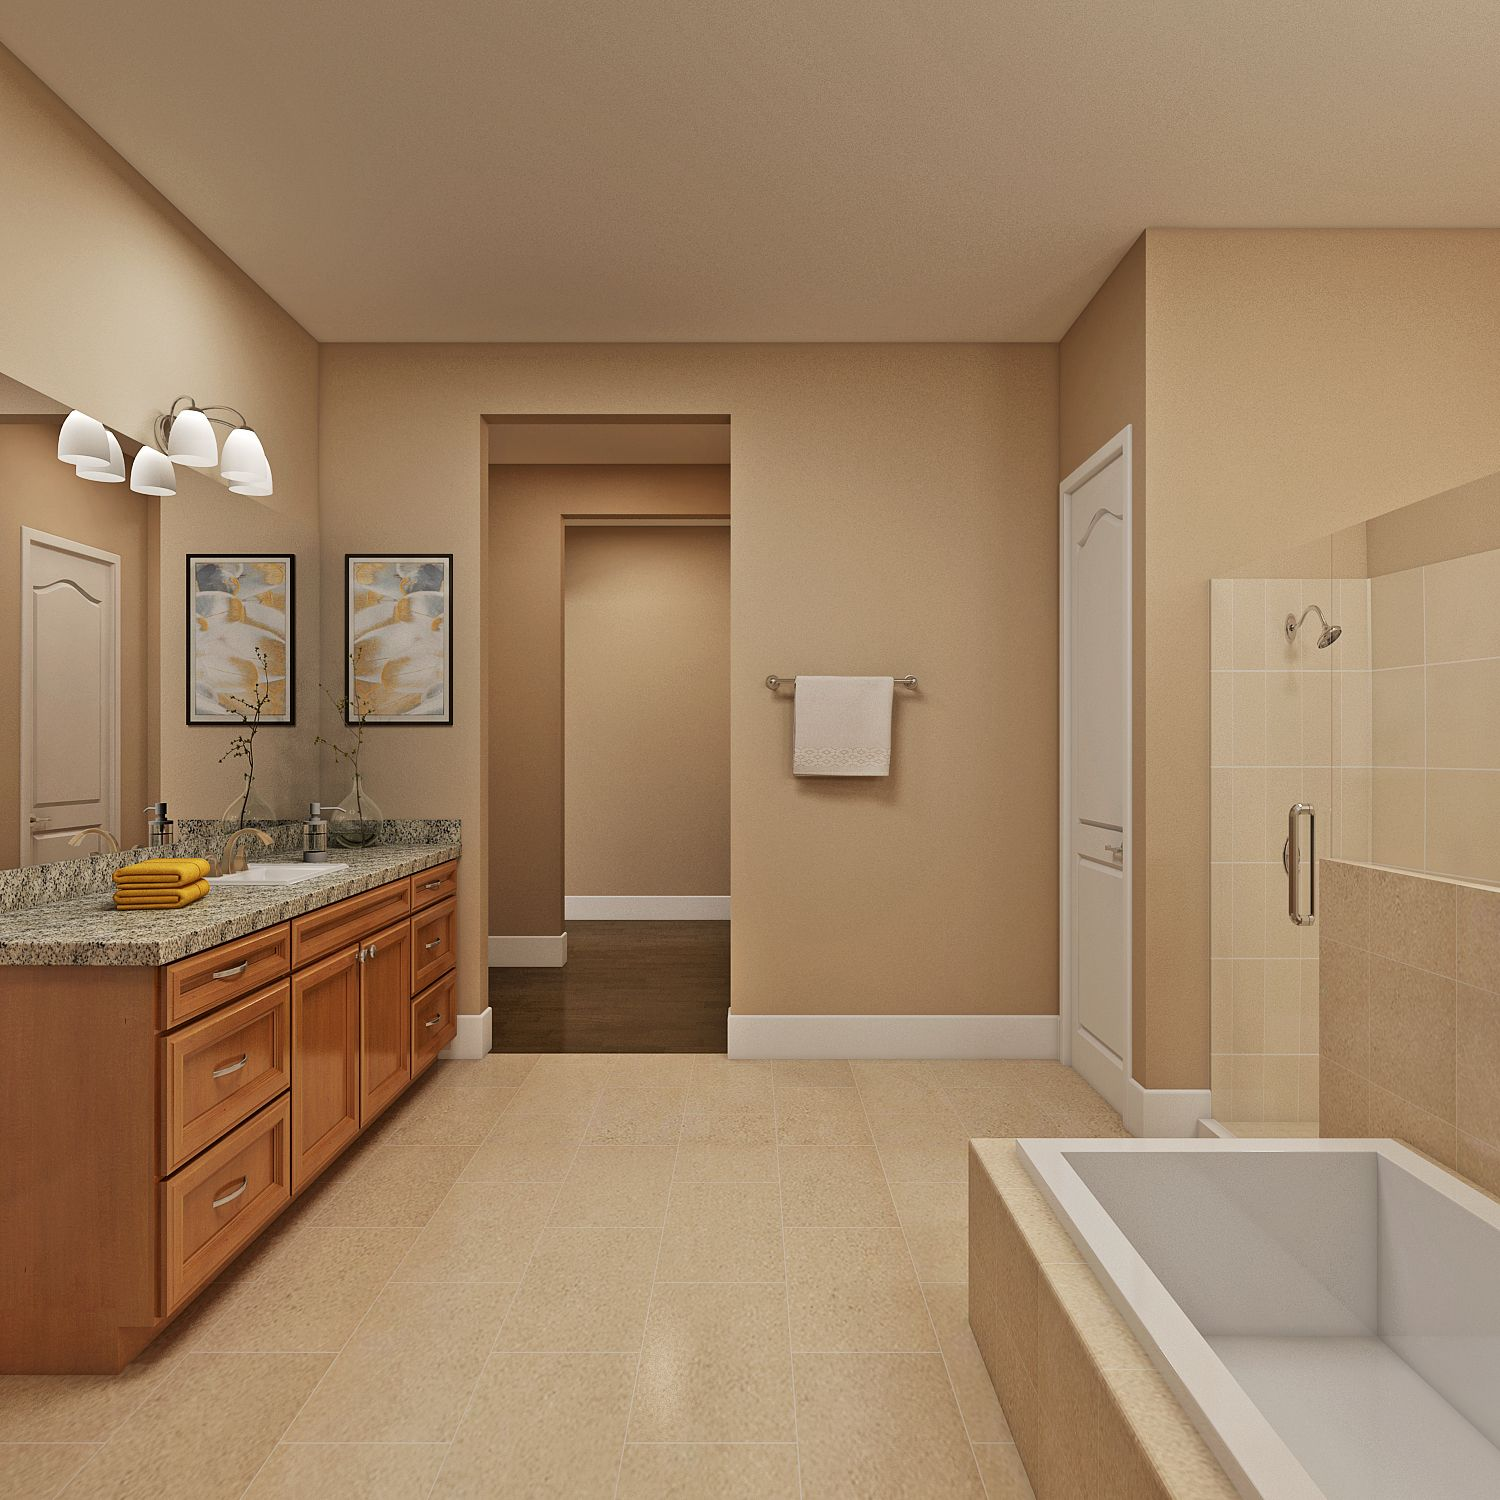 Additional photo for property listing at Residence 3 Lot 7 Reno, Nevada 89519 United States